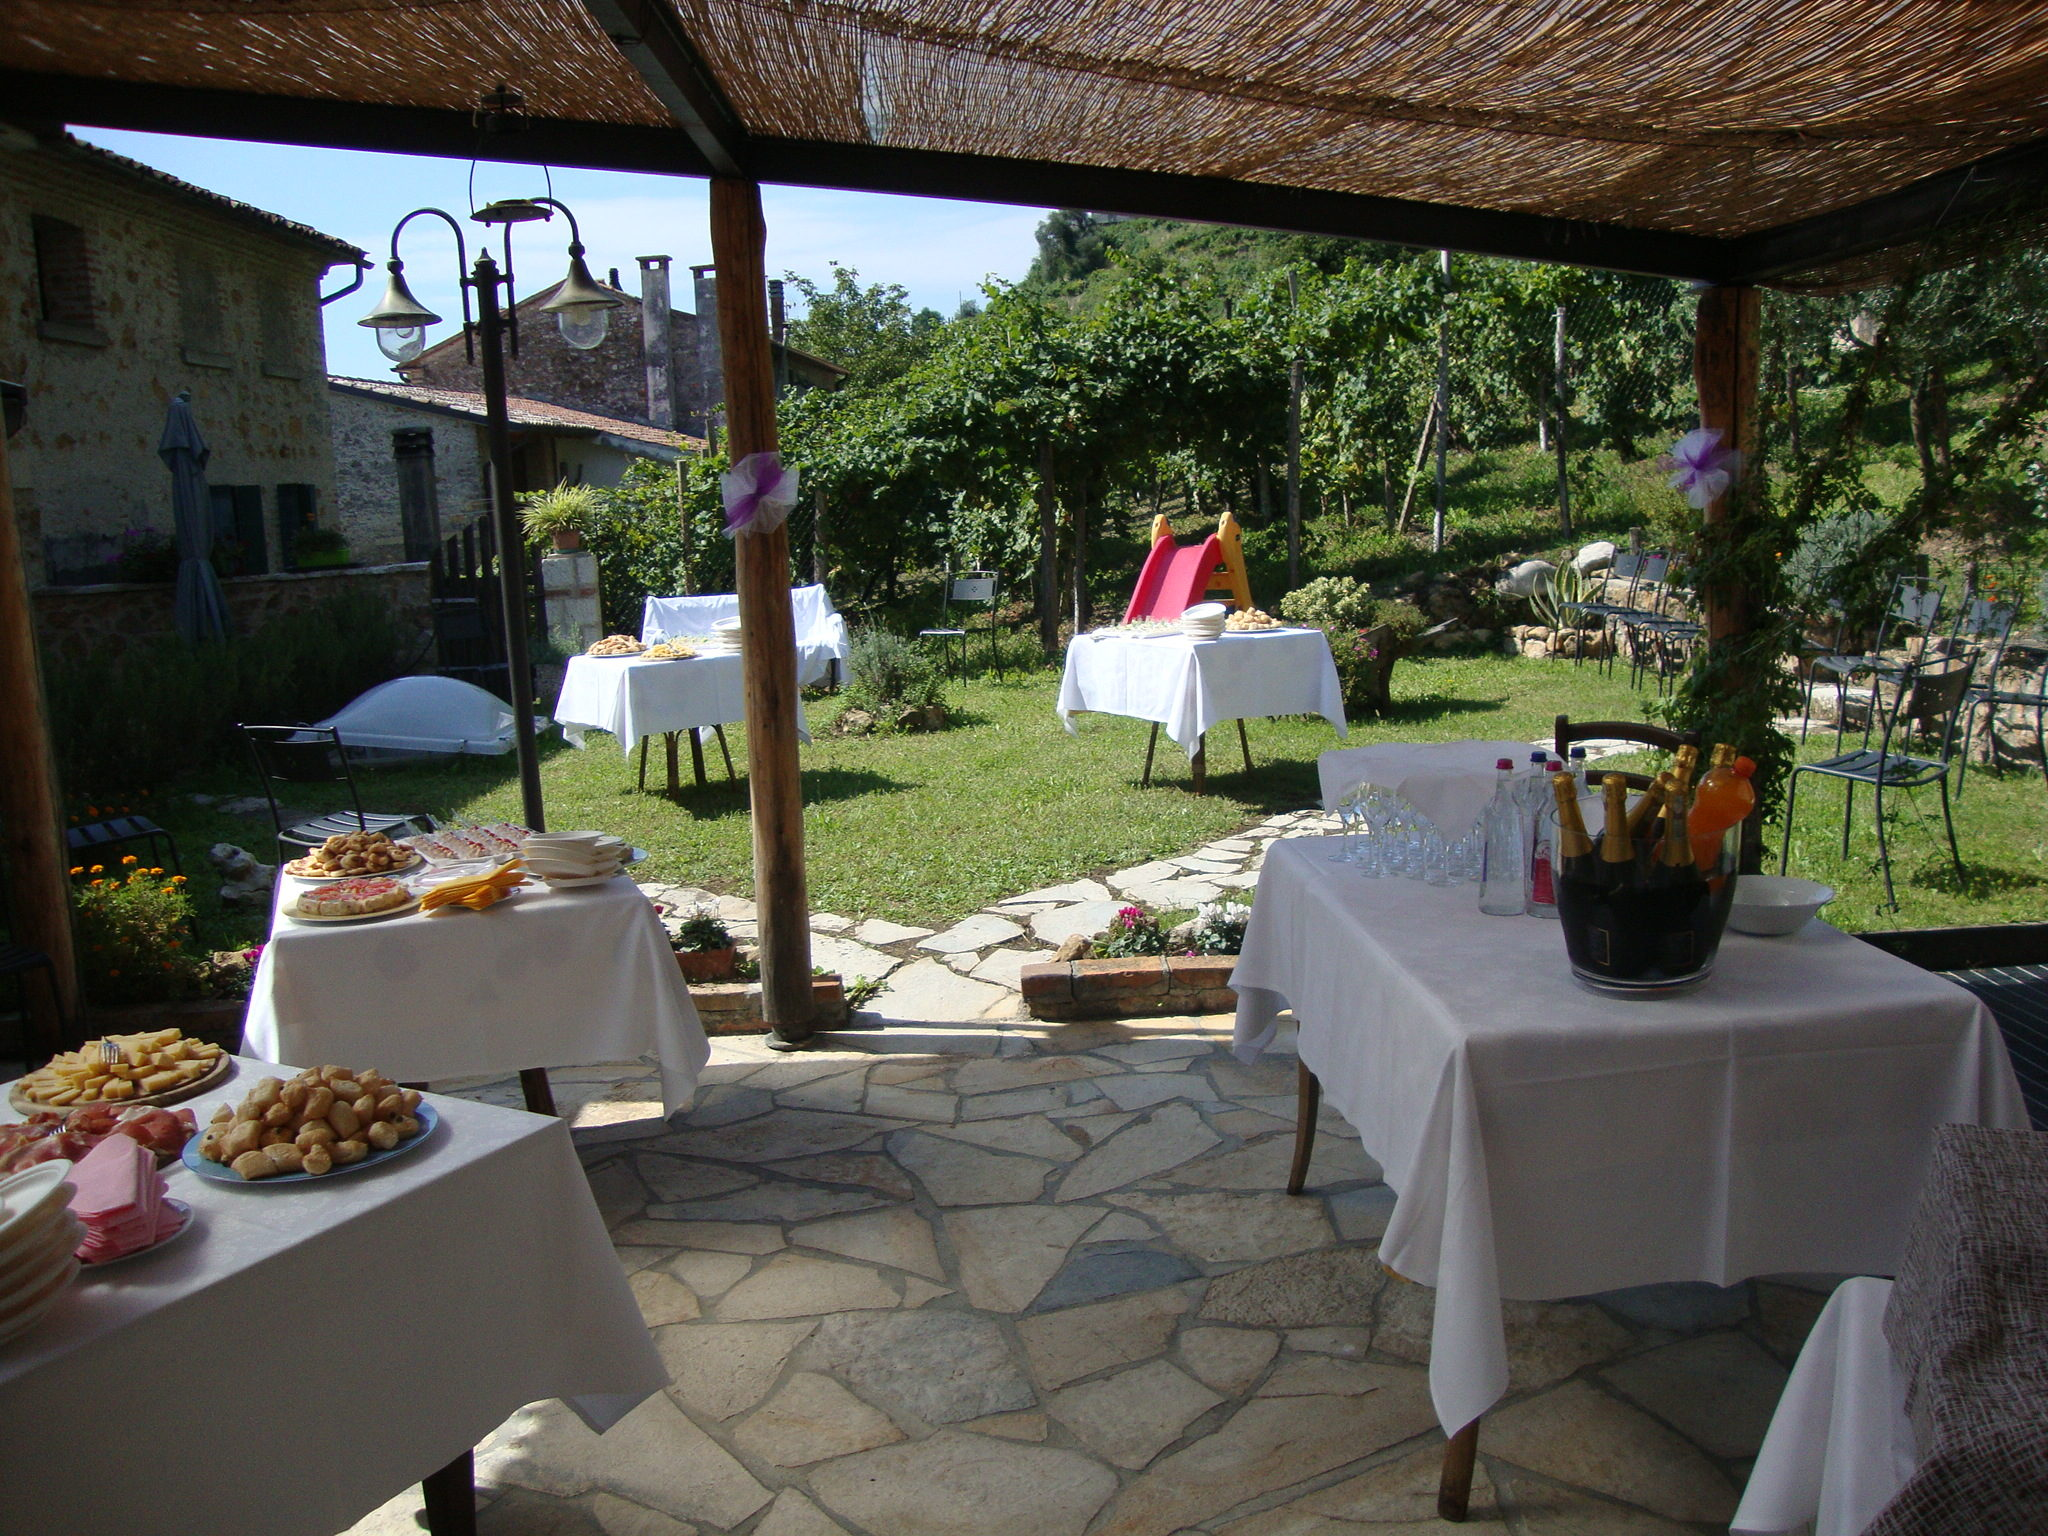 Il Bed & Breakfast | www.ristoranteallapergola.it